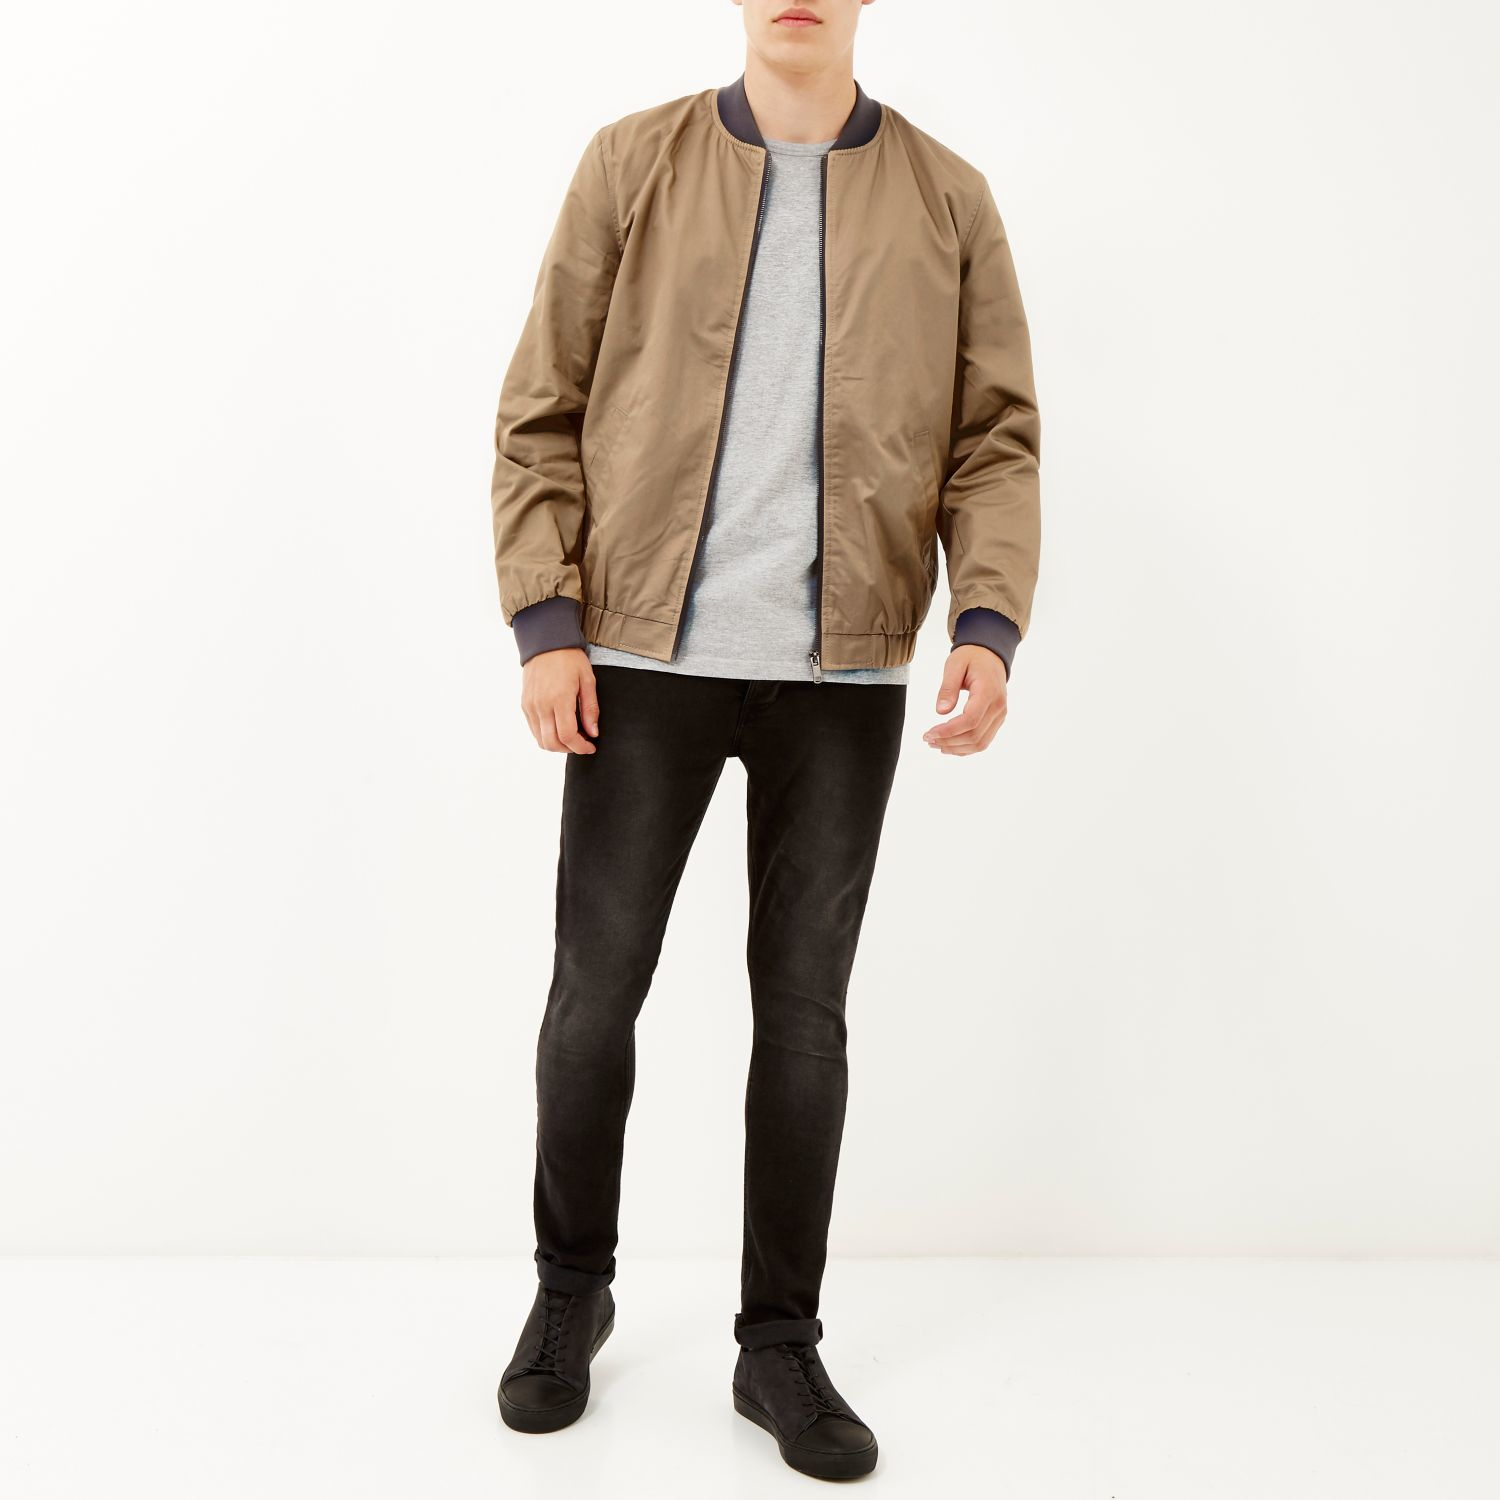 Brown Casual Jacket vgHXS3